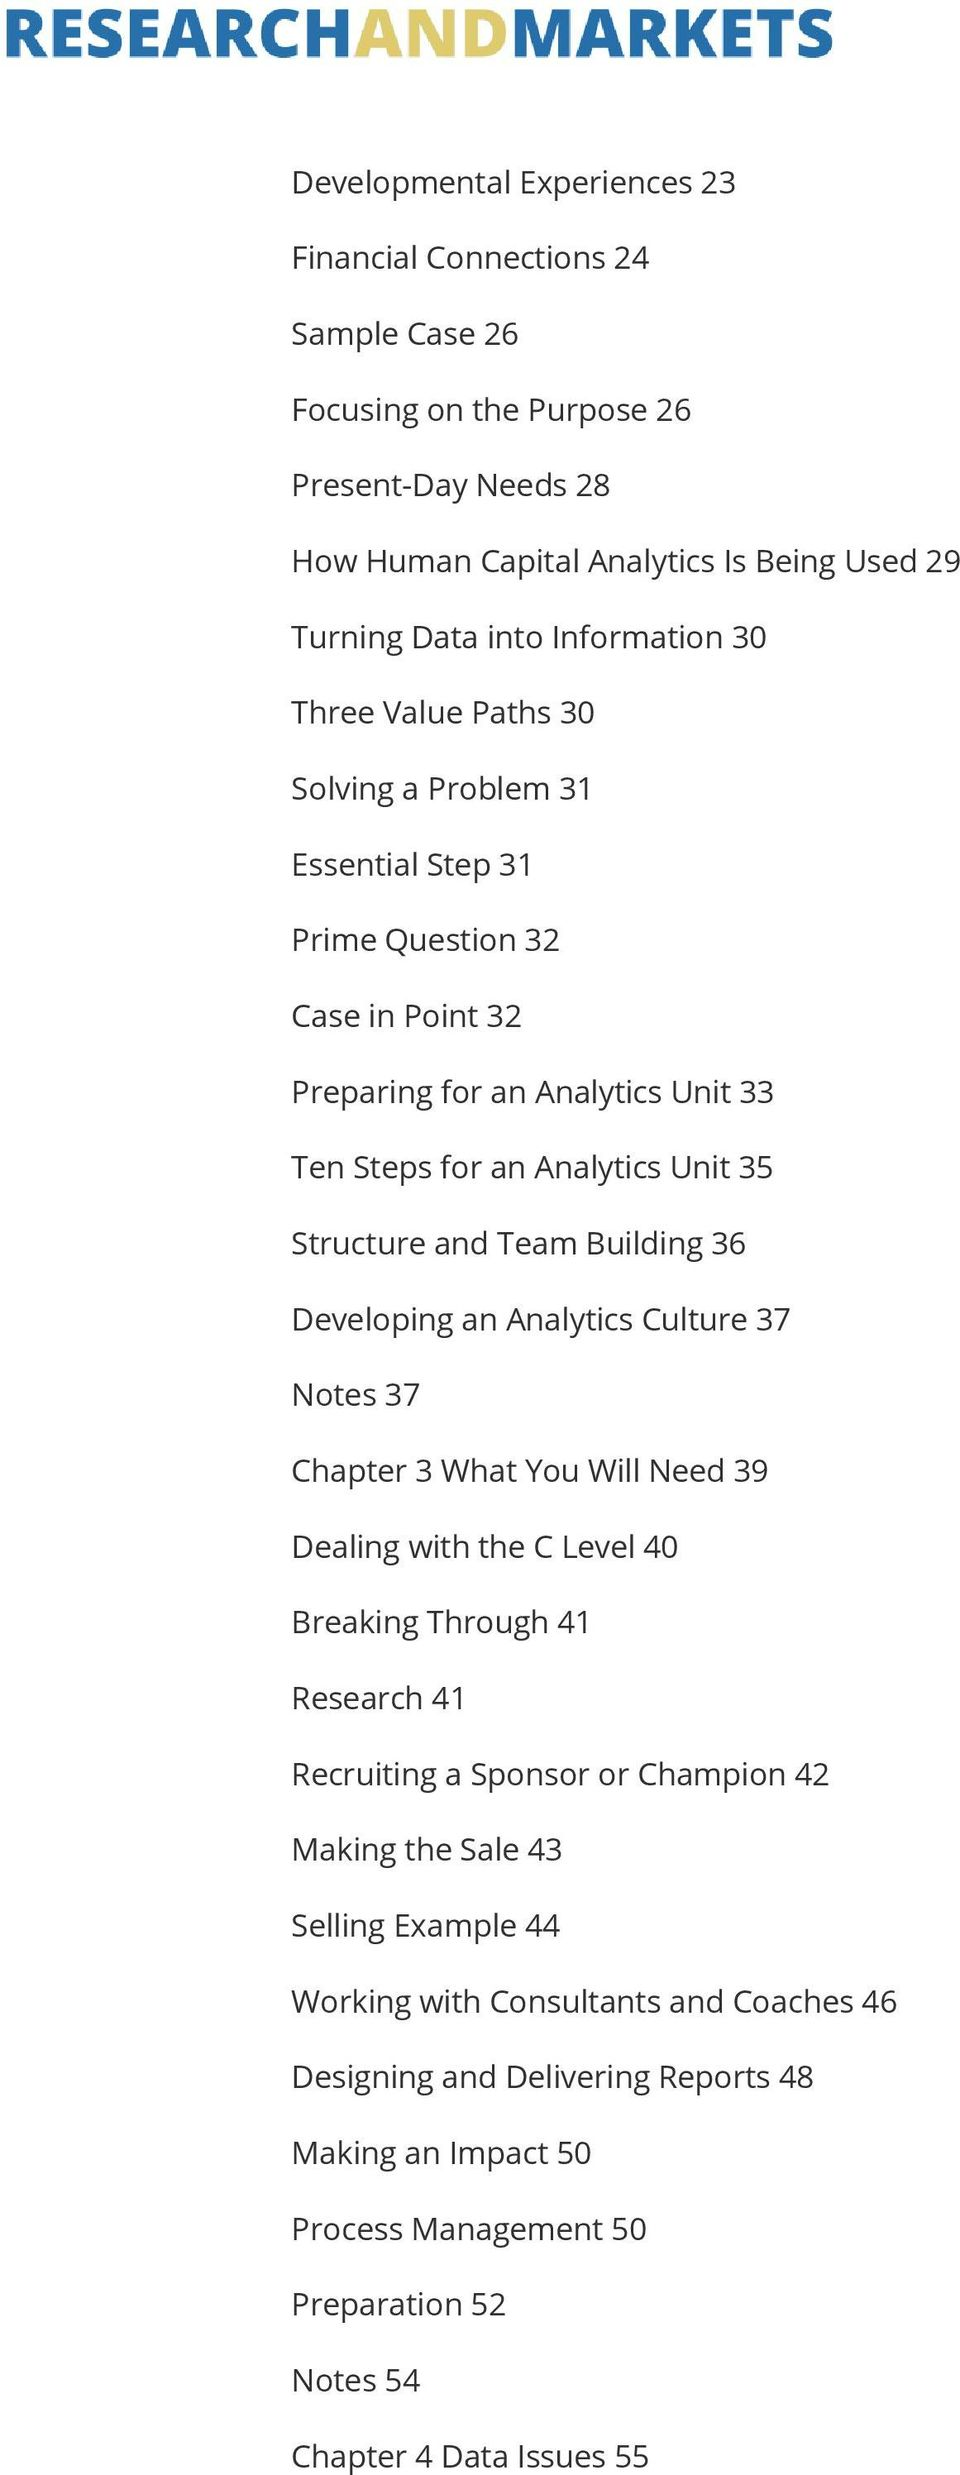 Building 36 Developing an Analytics Culture 37 Notes 37 Chapter 3 What You Will Need 39 Dealing with the C Level 40 Breaking Through 41 Research 41 Recruiting a Sponsor or Champion 42 Making